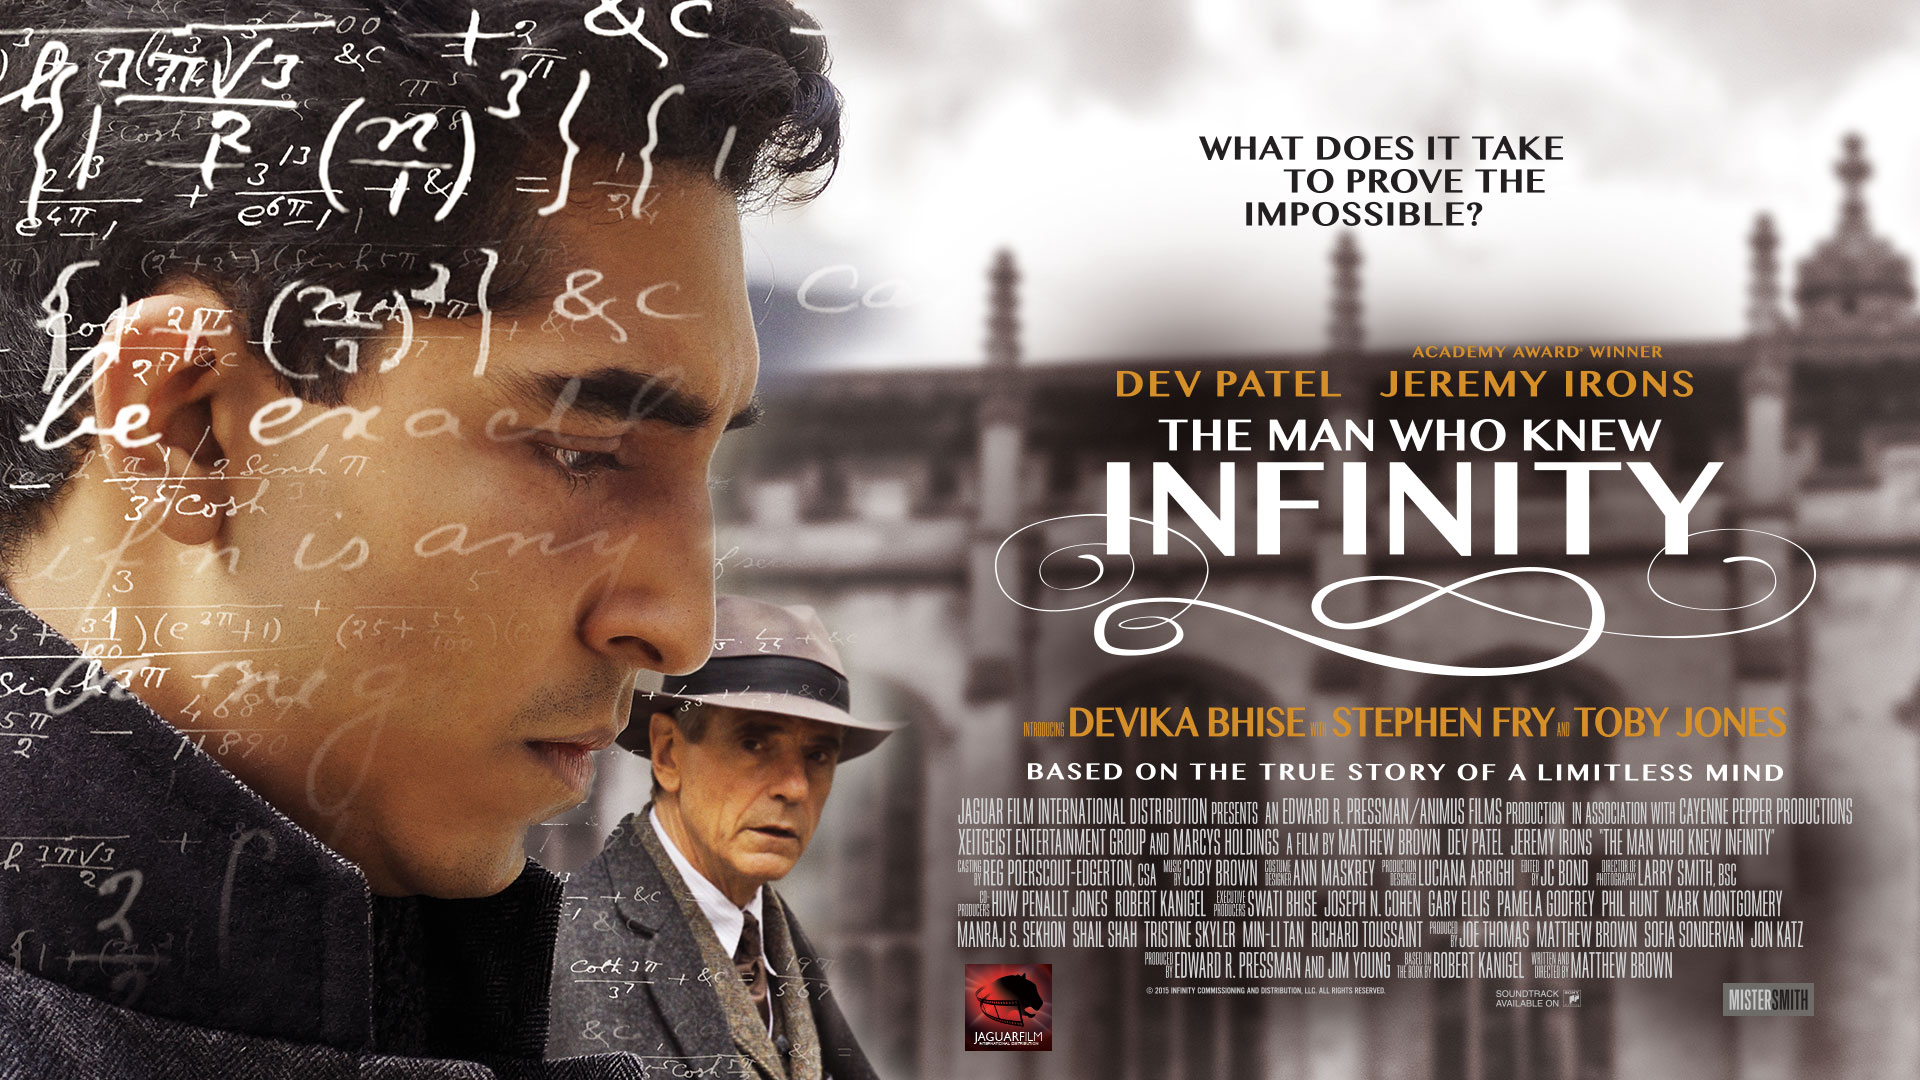 The-Man-Who-Knew-Infinity-dev-patel